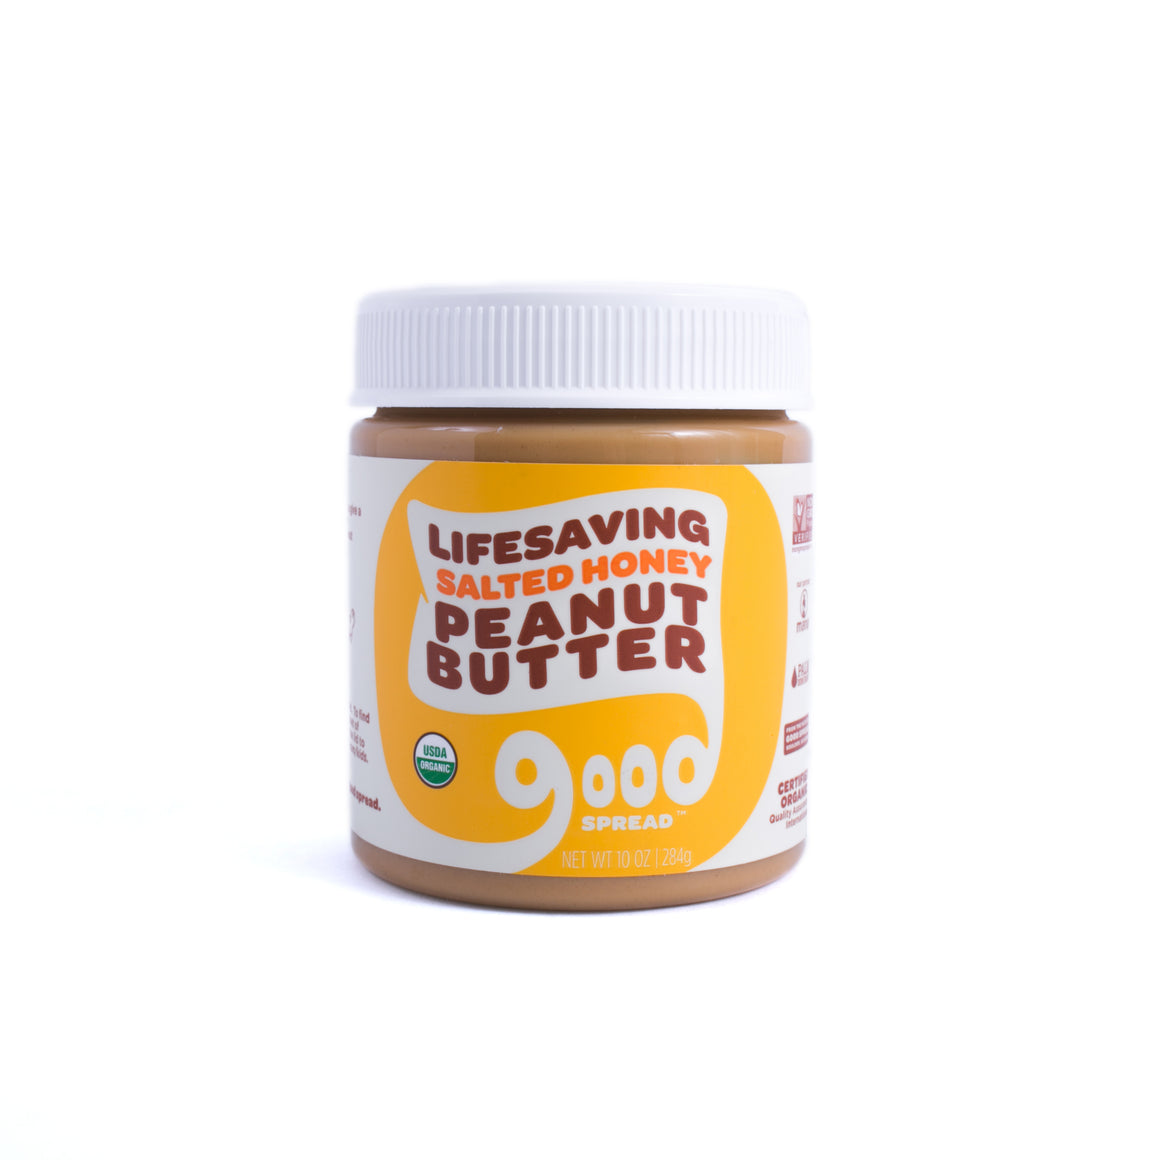 Organic Salted Honey Peanut Butter, 10oz. Jar (6 Count)